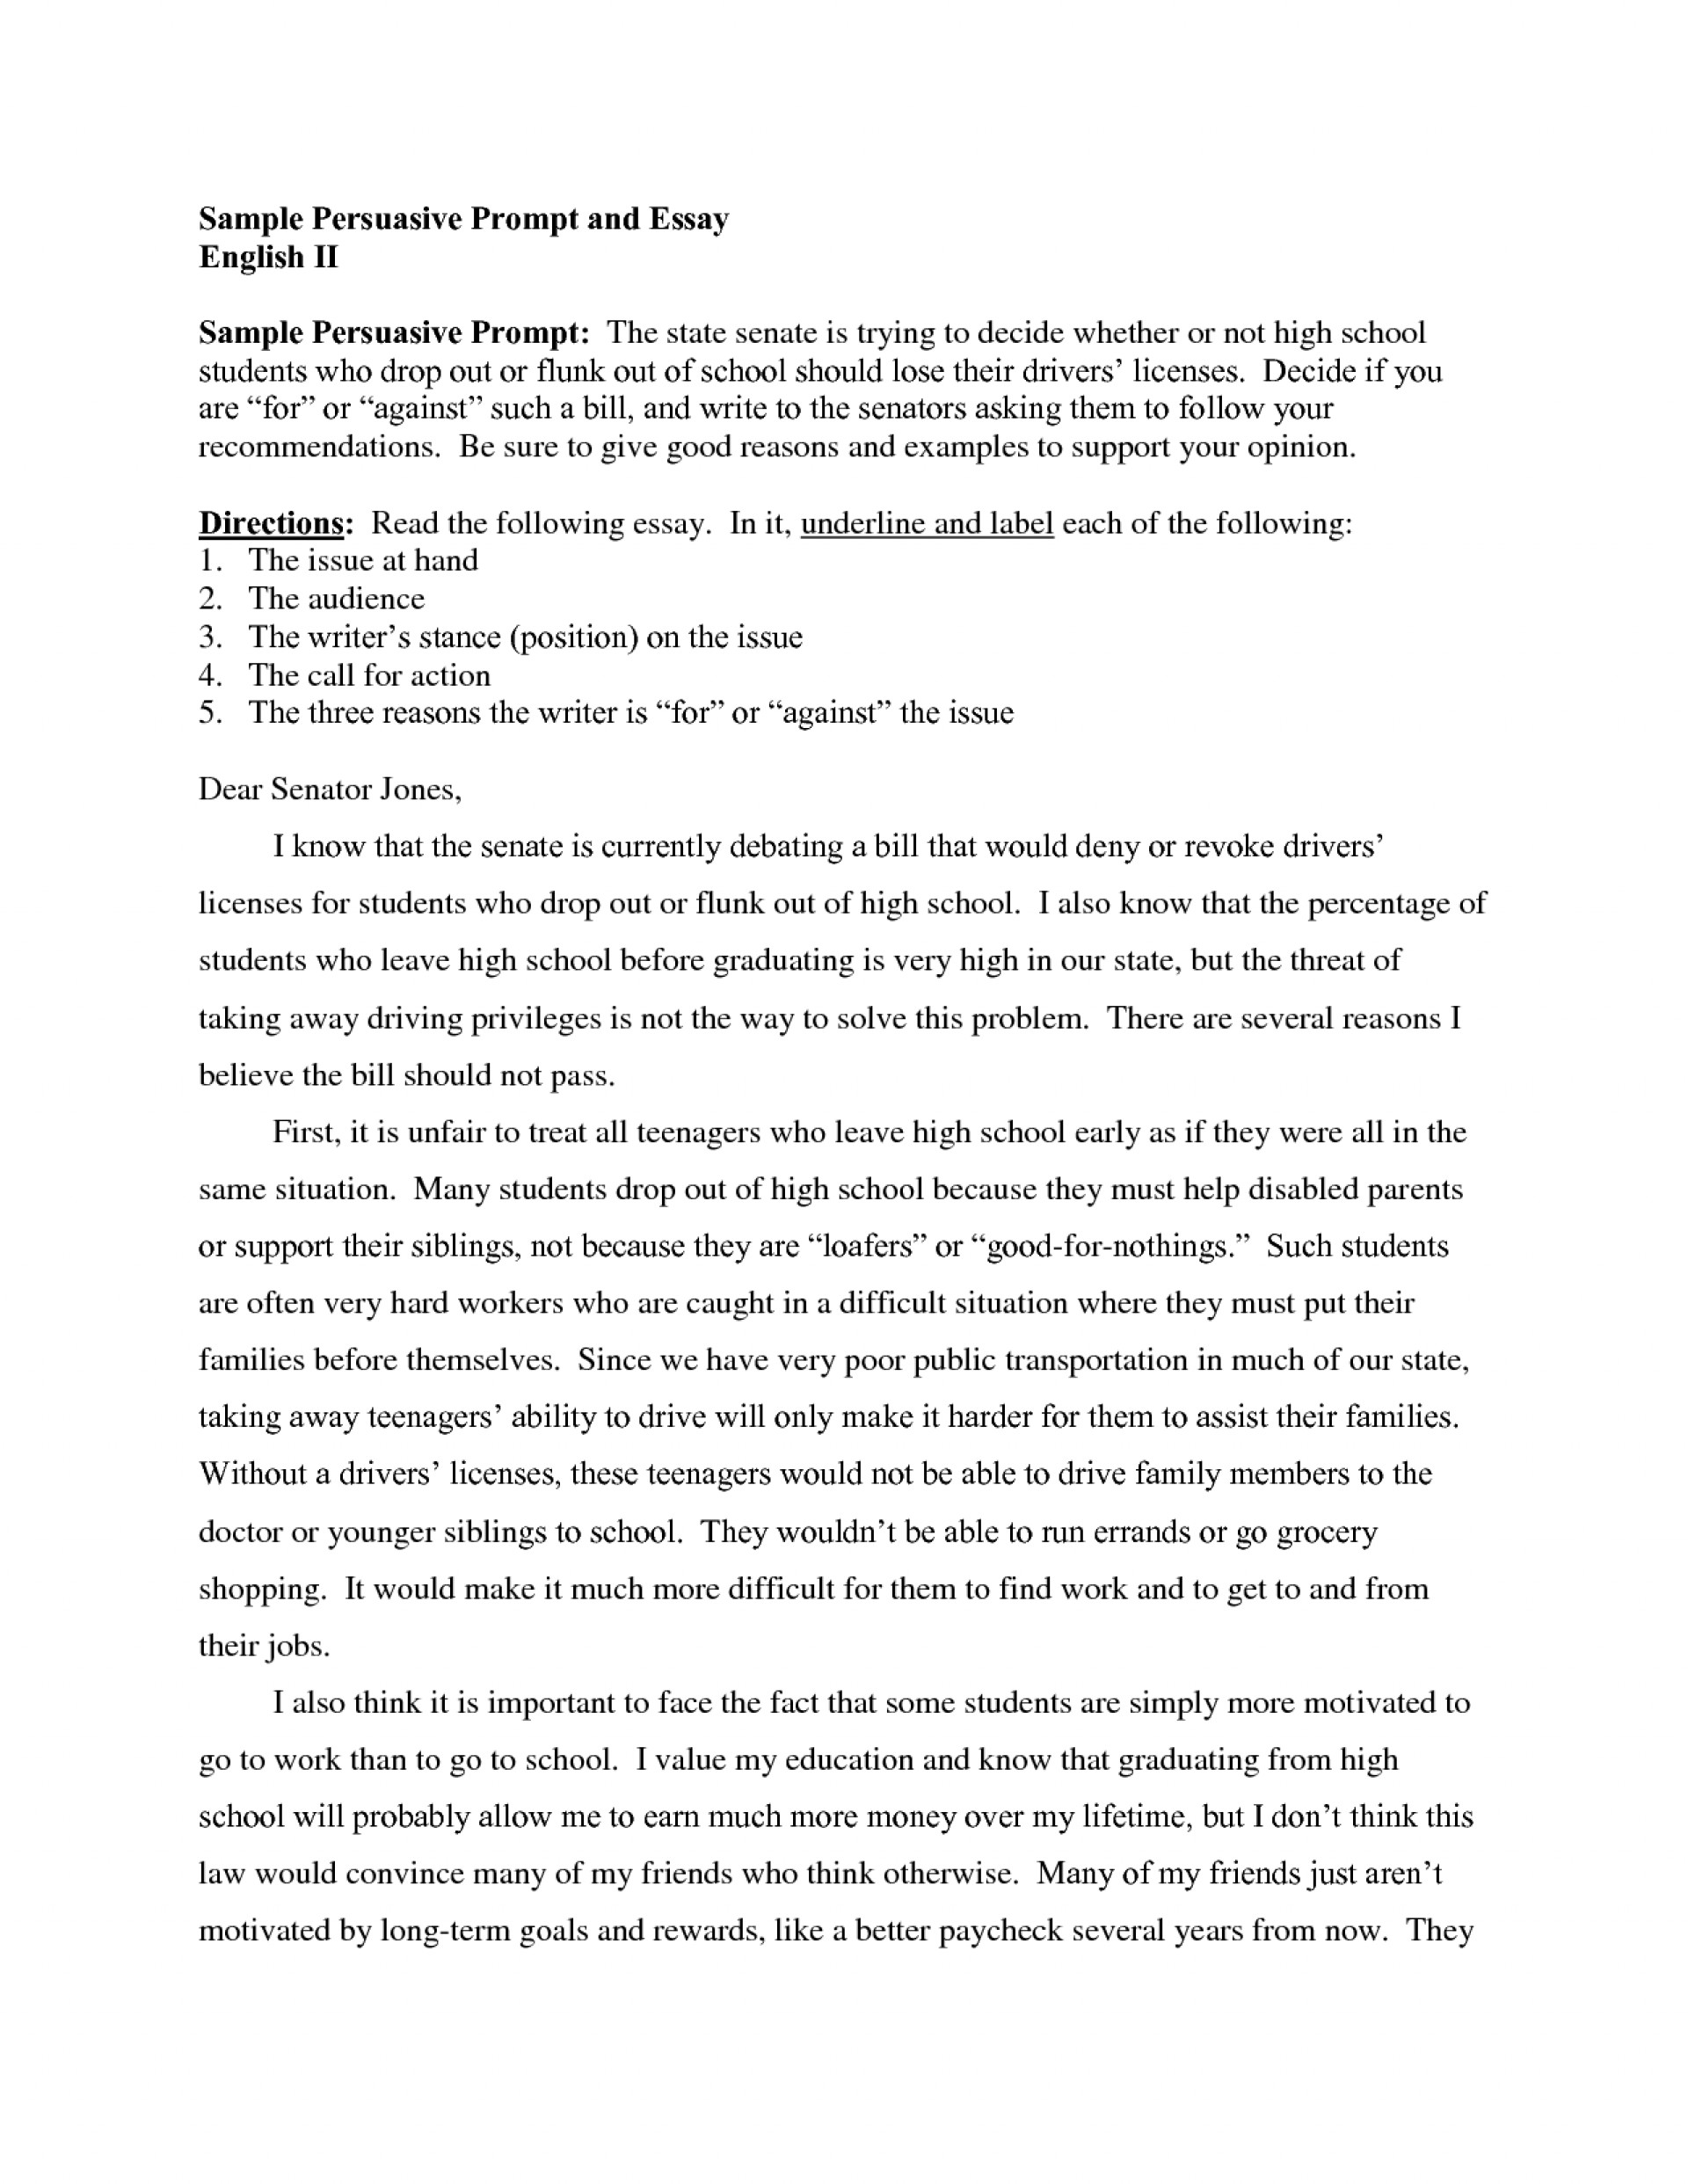 013 Research Paper Easy Topic Persuasive Essay Topics For High School Sample Ideas Highschool Students Good Prompt Funny Fun List Of Seniors Writing English Sensational Questions Psychology Science Biology 1920